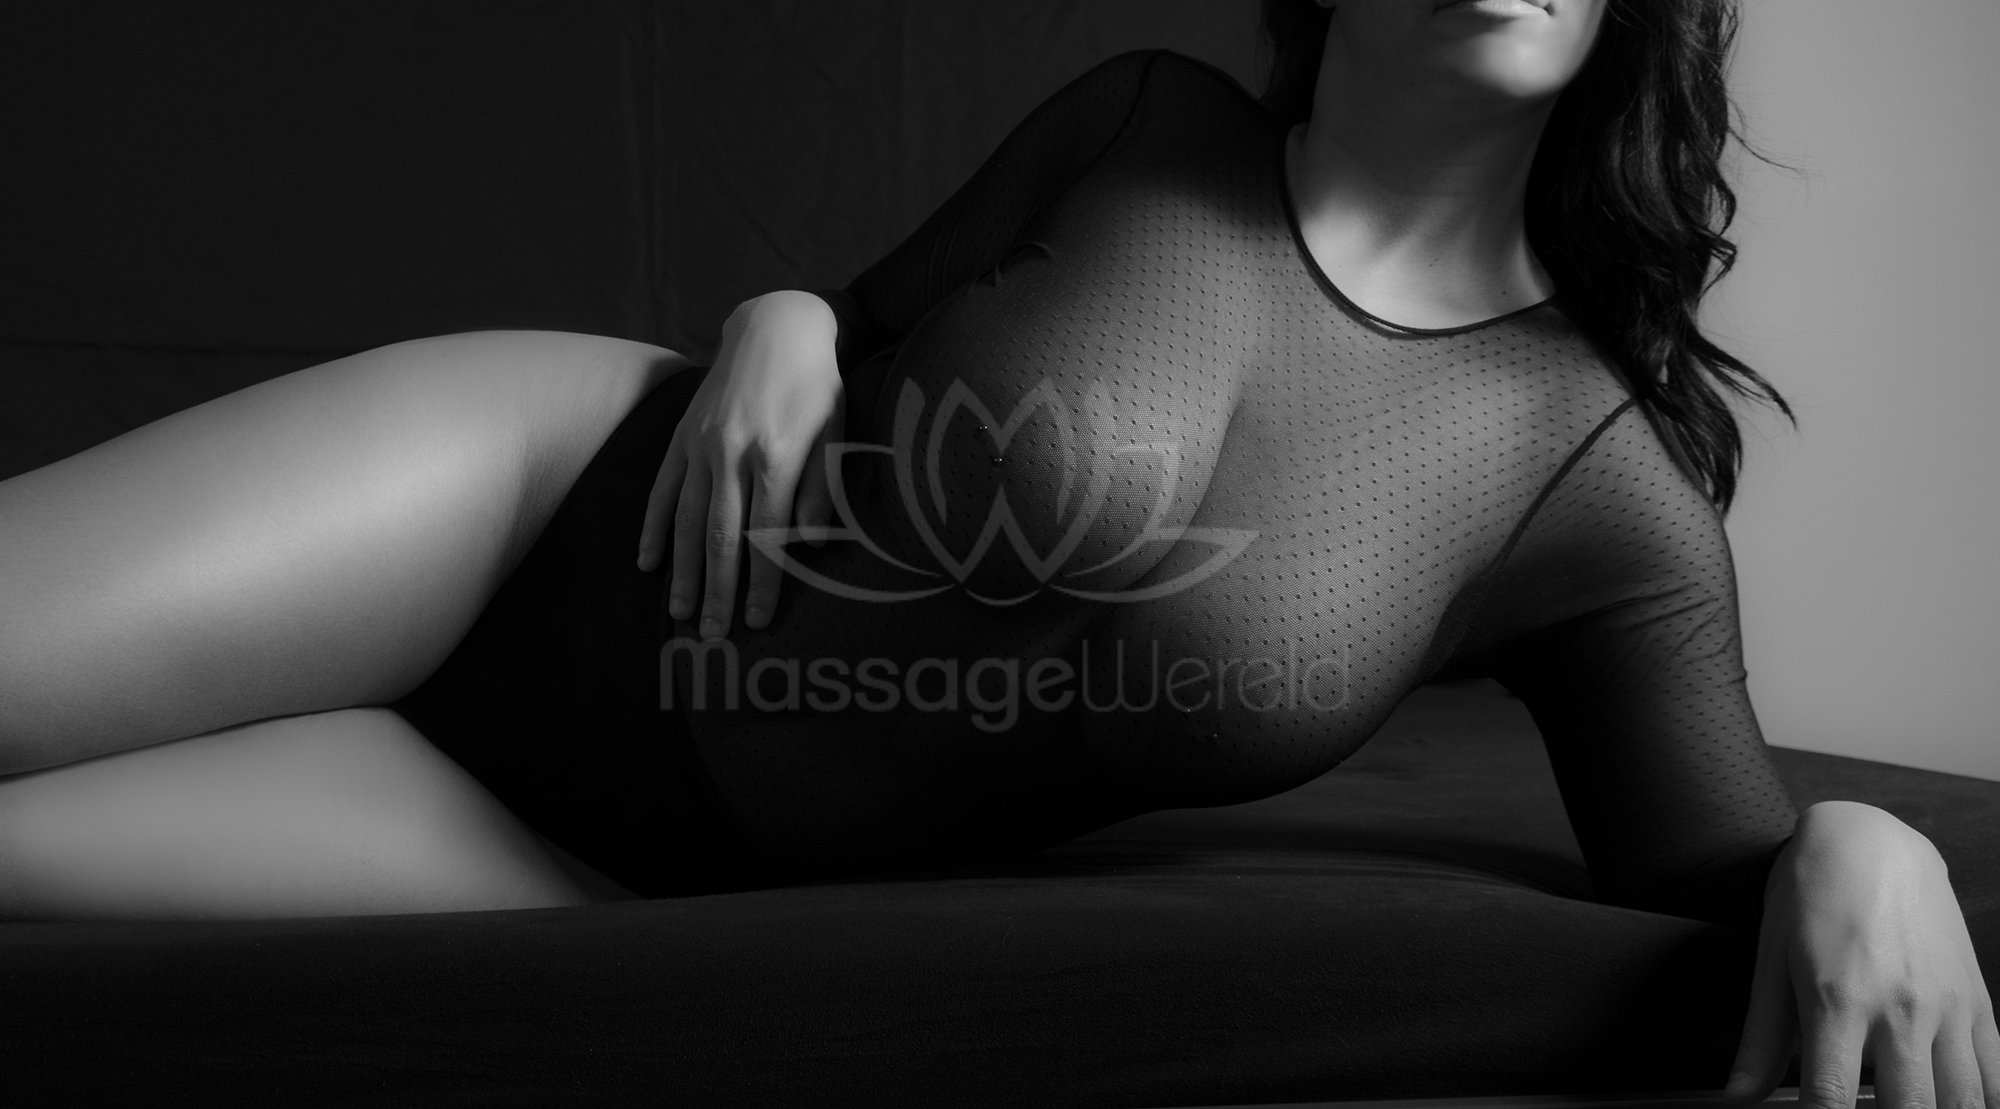 Masseuse Massagewereld